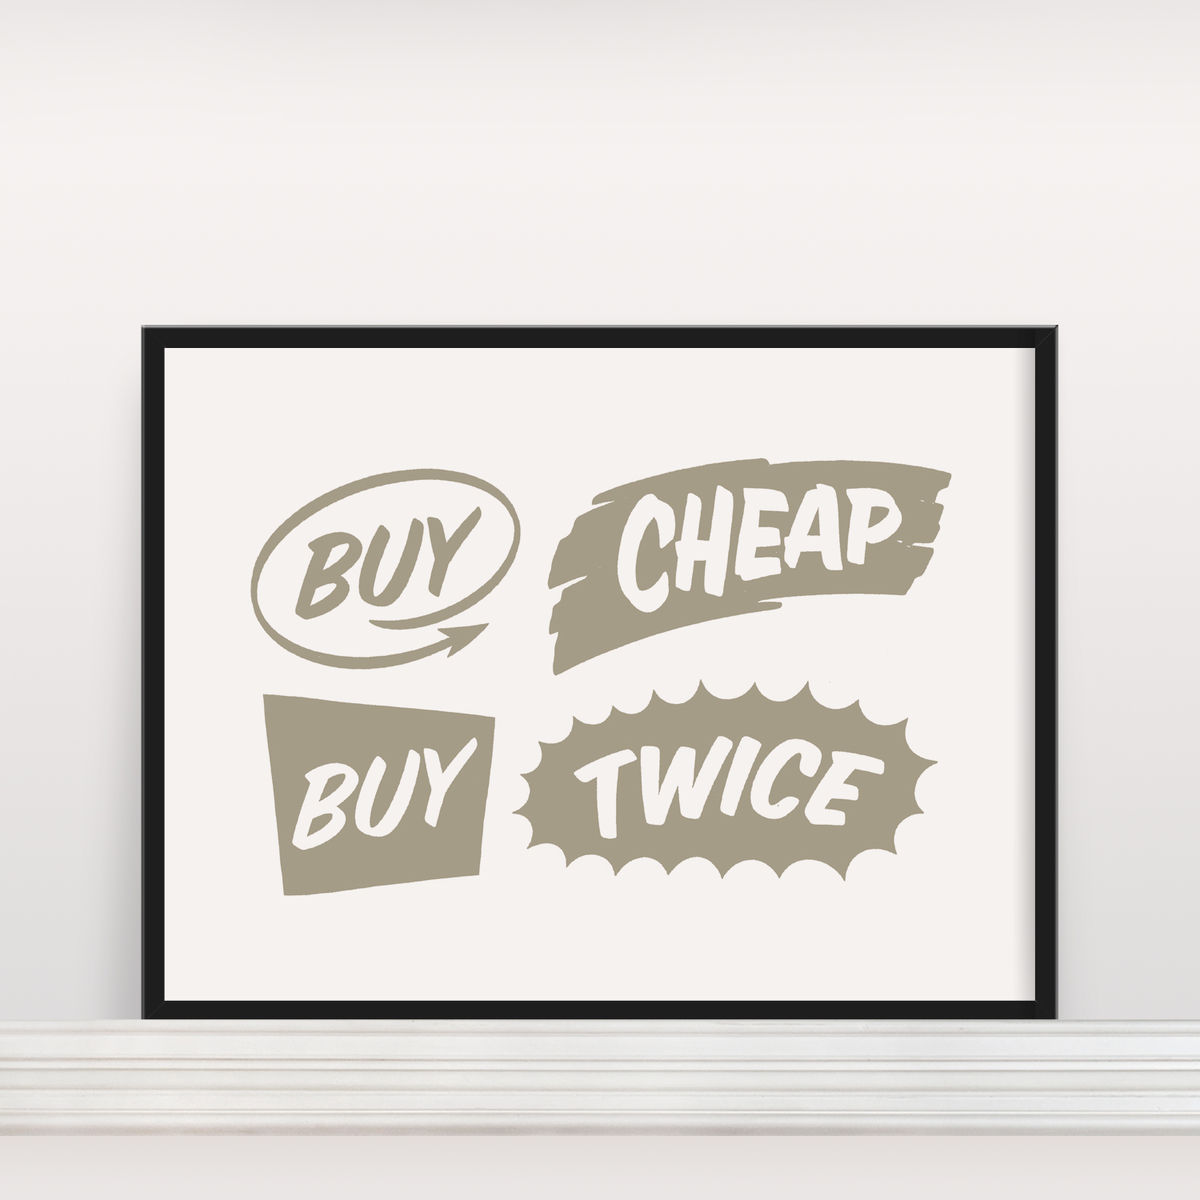 Buy Cheap Buy Twice - Screen Print - anthonyoram: anthonyoram.com/collections/sold-out/products/buy-cheap-buy-twice